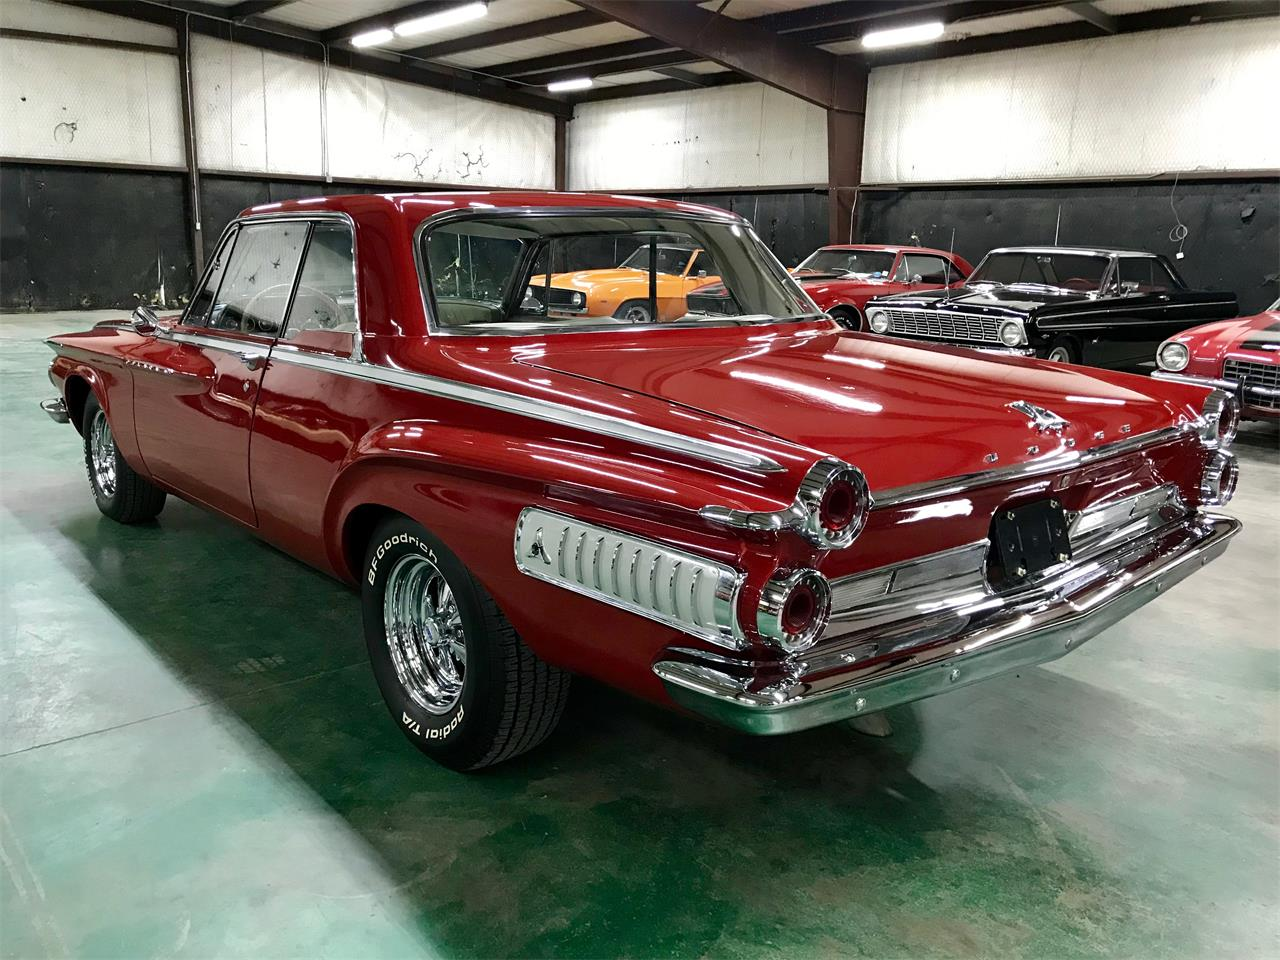 Large Picture of Classic '62 Dodge Polara - $25,500.00 Offered by PC Investments - QD2N